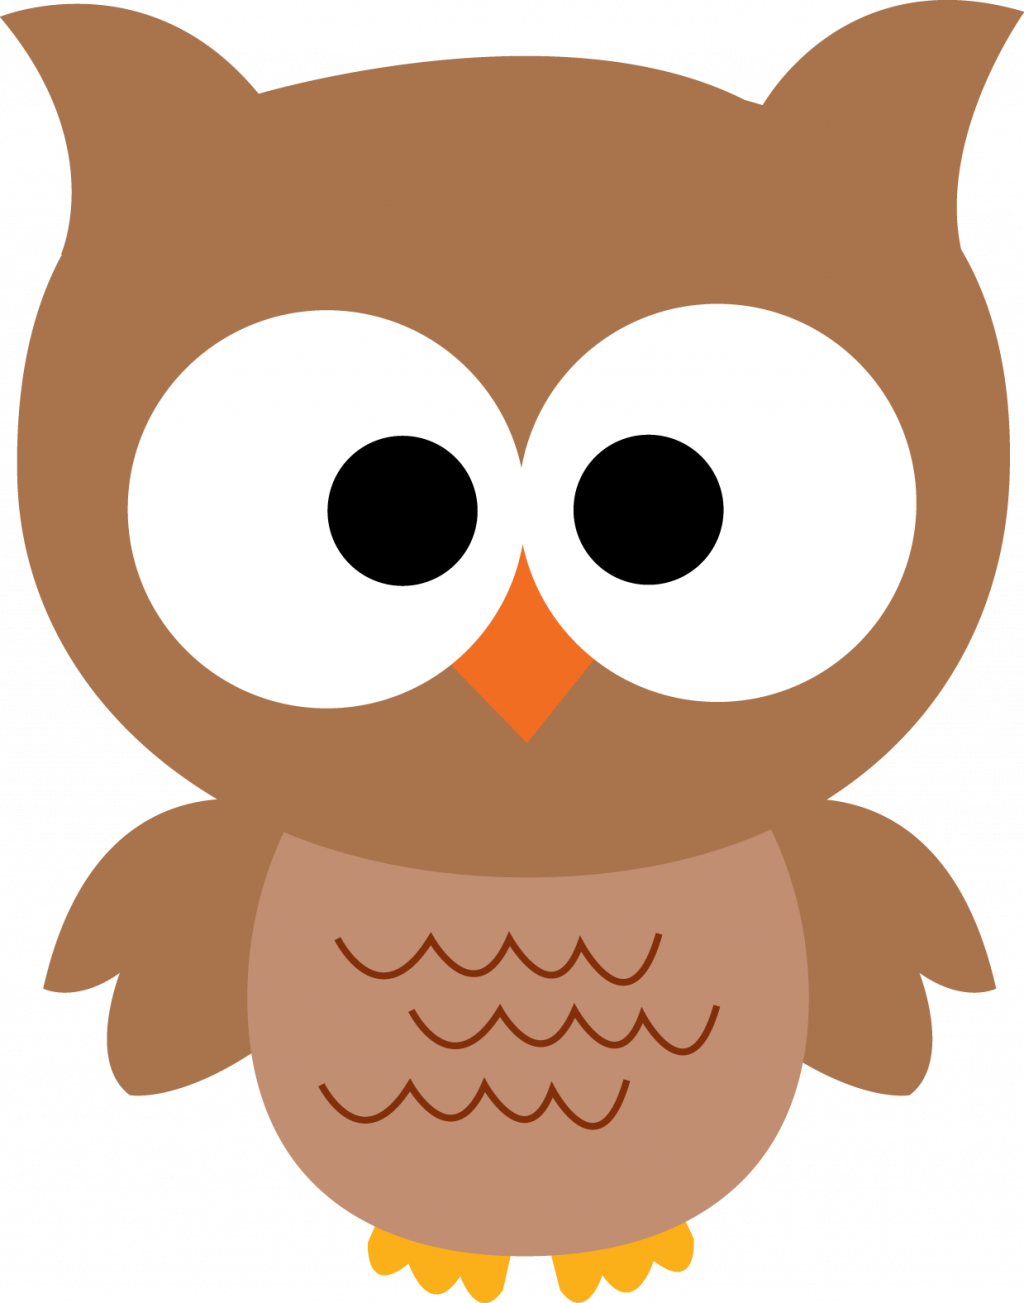 Coloring Pages Owl Pictures Cartoon Barn Clipart Free - Owl Clipart - Png Download (1024x1303), Png Download